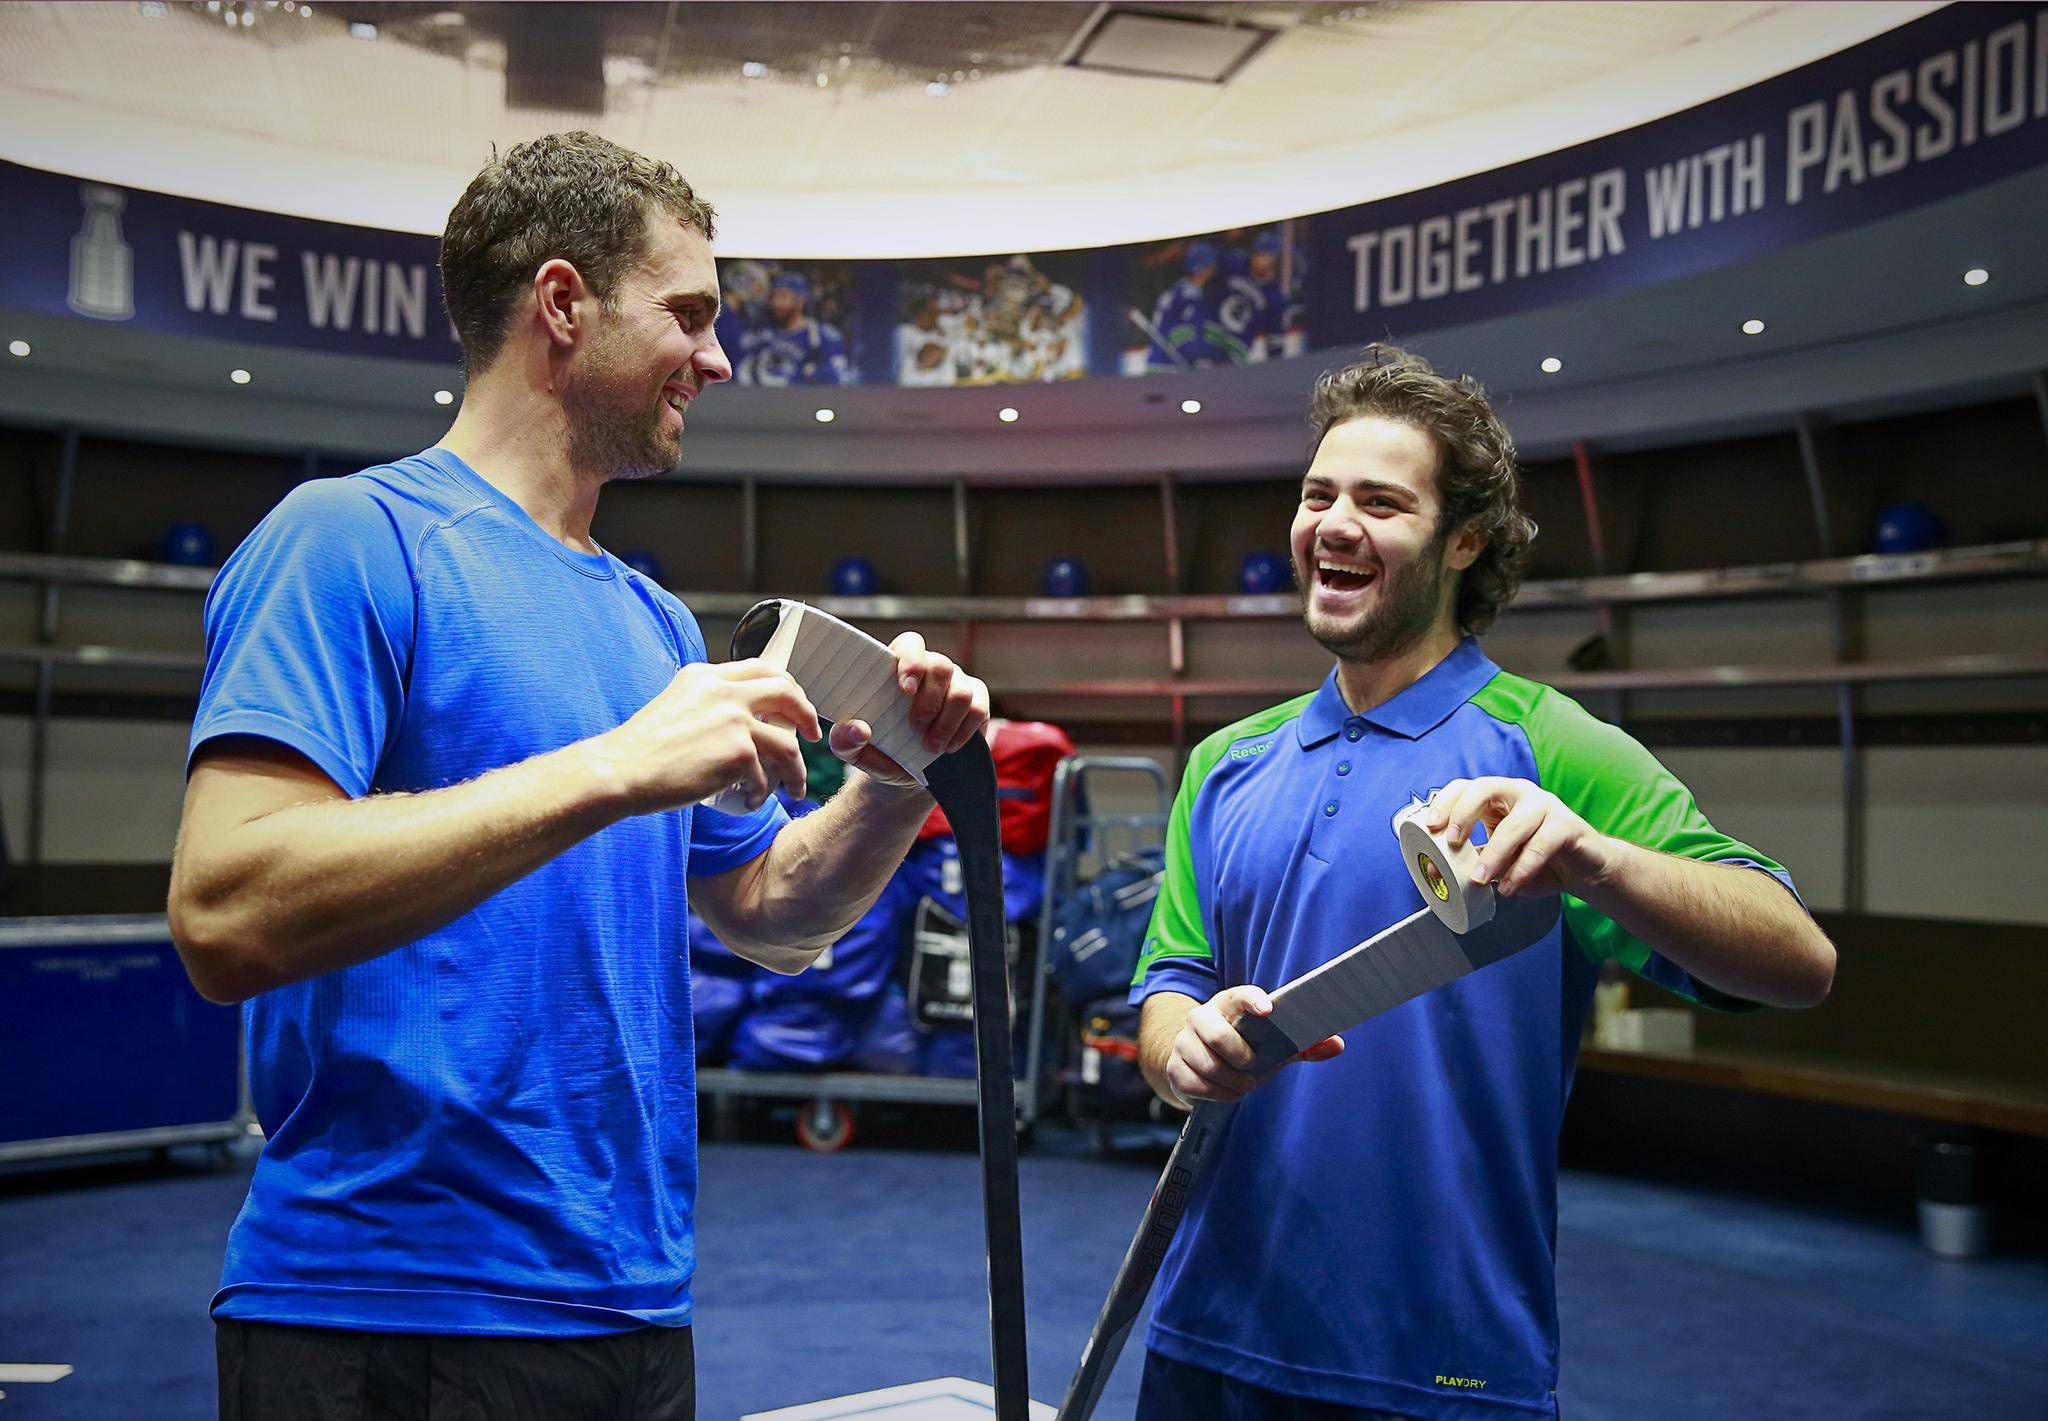 Embracing autism: Owners of Vancouver Canucks want families of